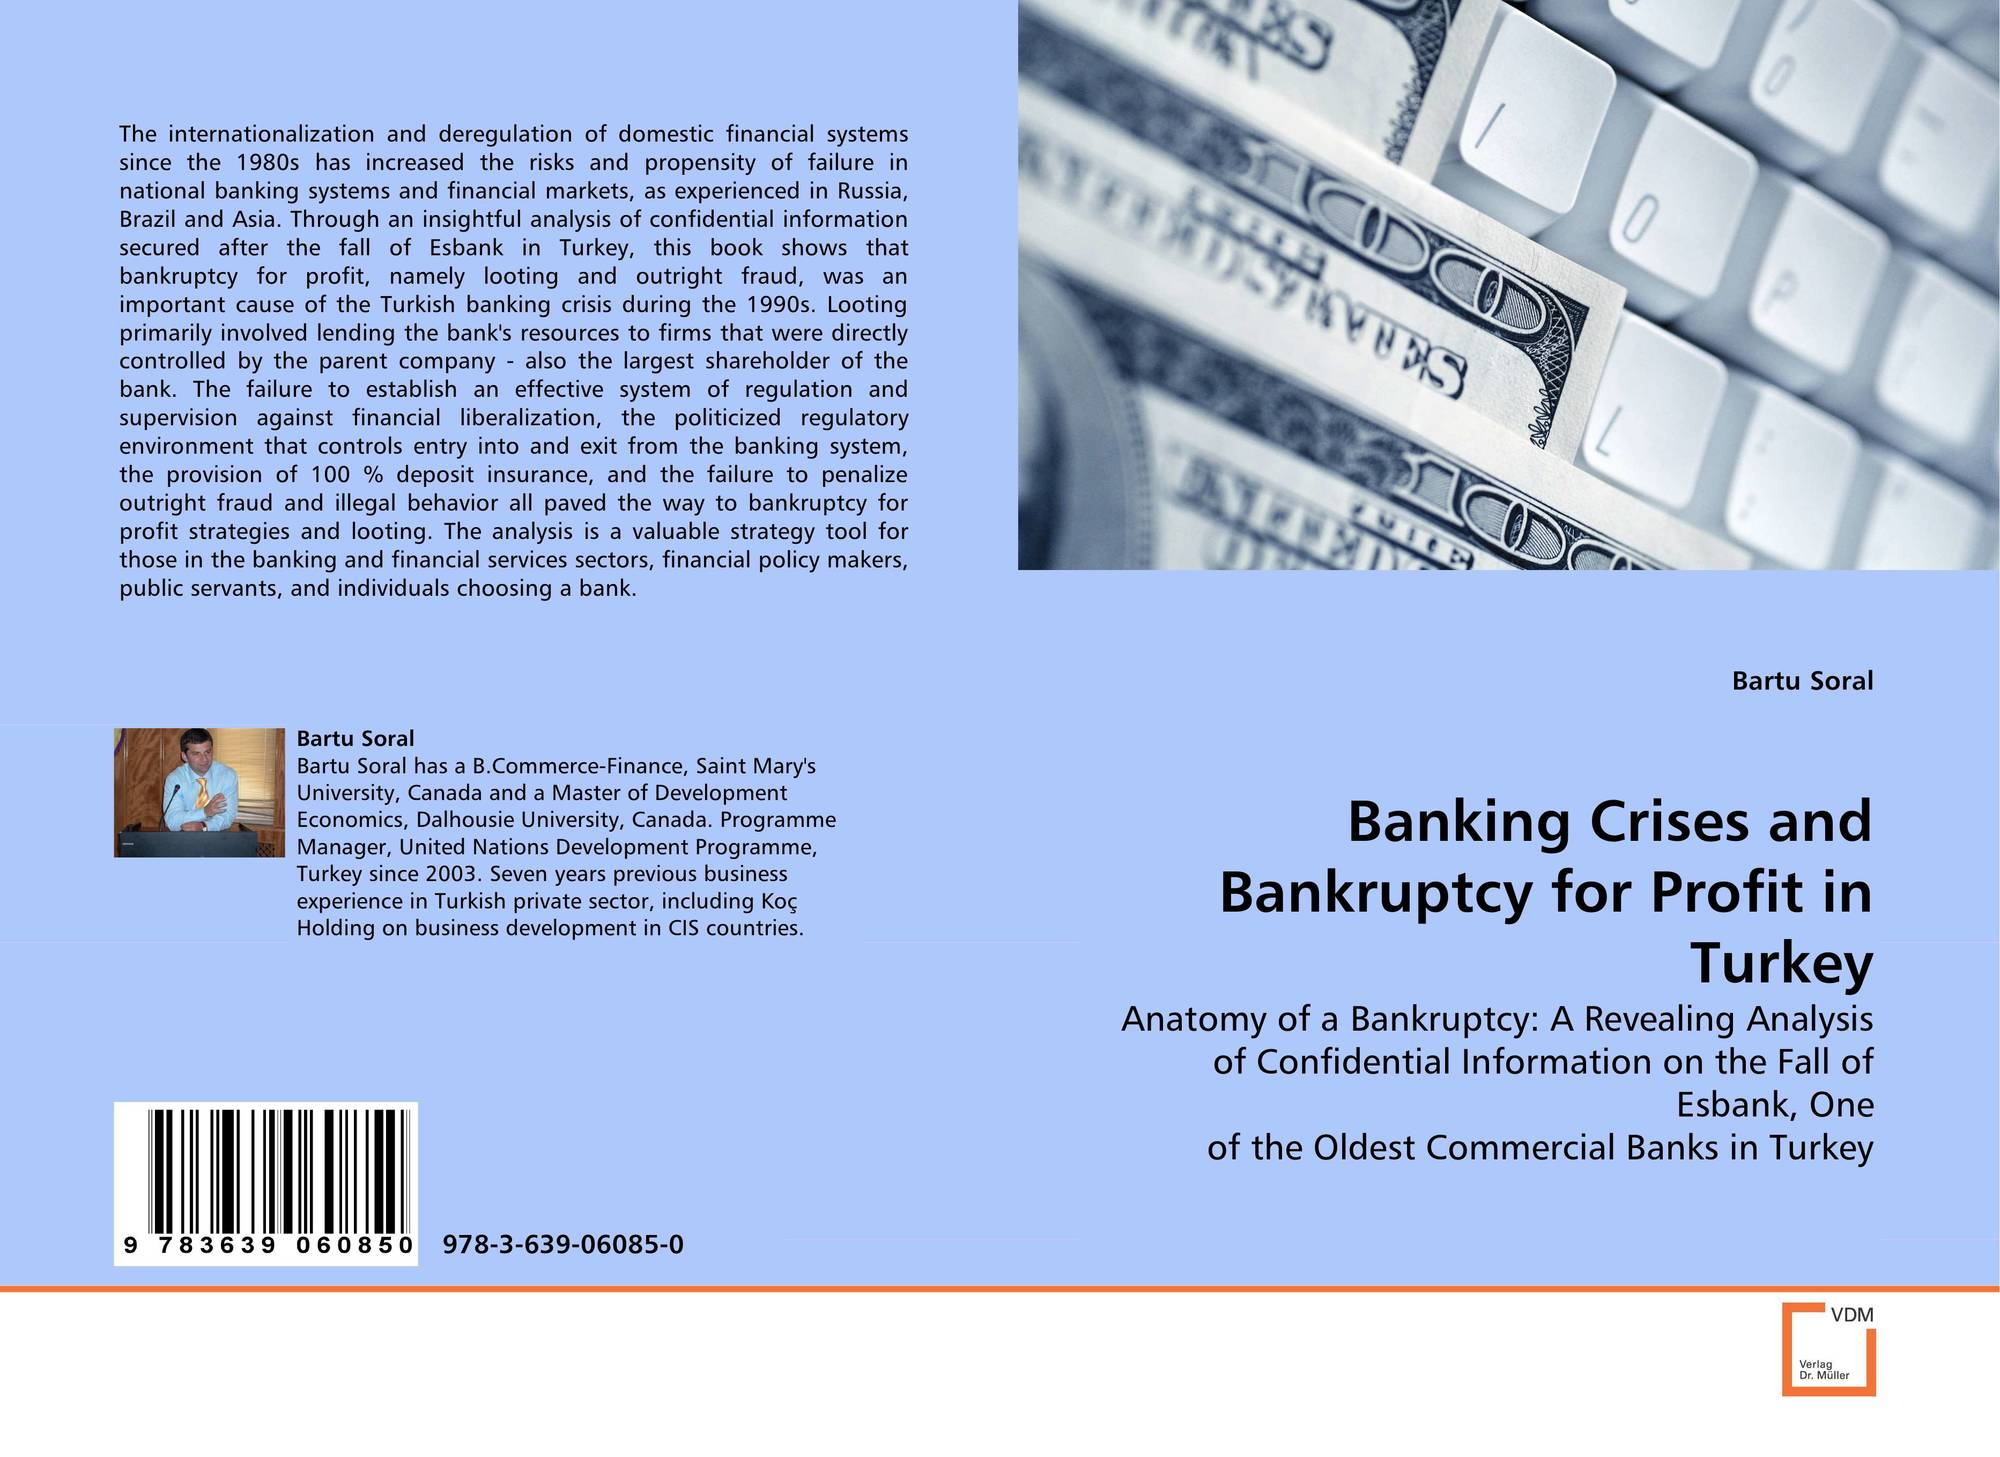 an analysis of the banking sector in the turkish financial system The fundamental challenges confronting the turkish financial system are to reduce the analysis shows how such an especially in the banking sector.